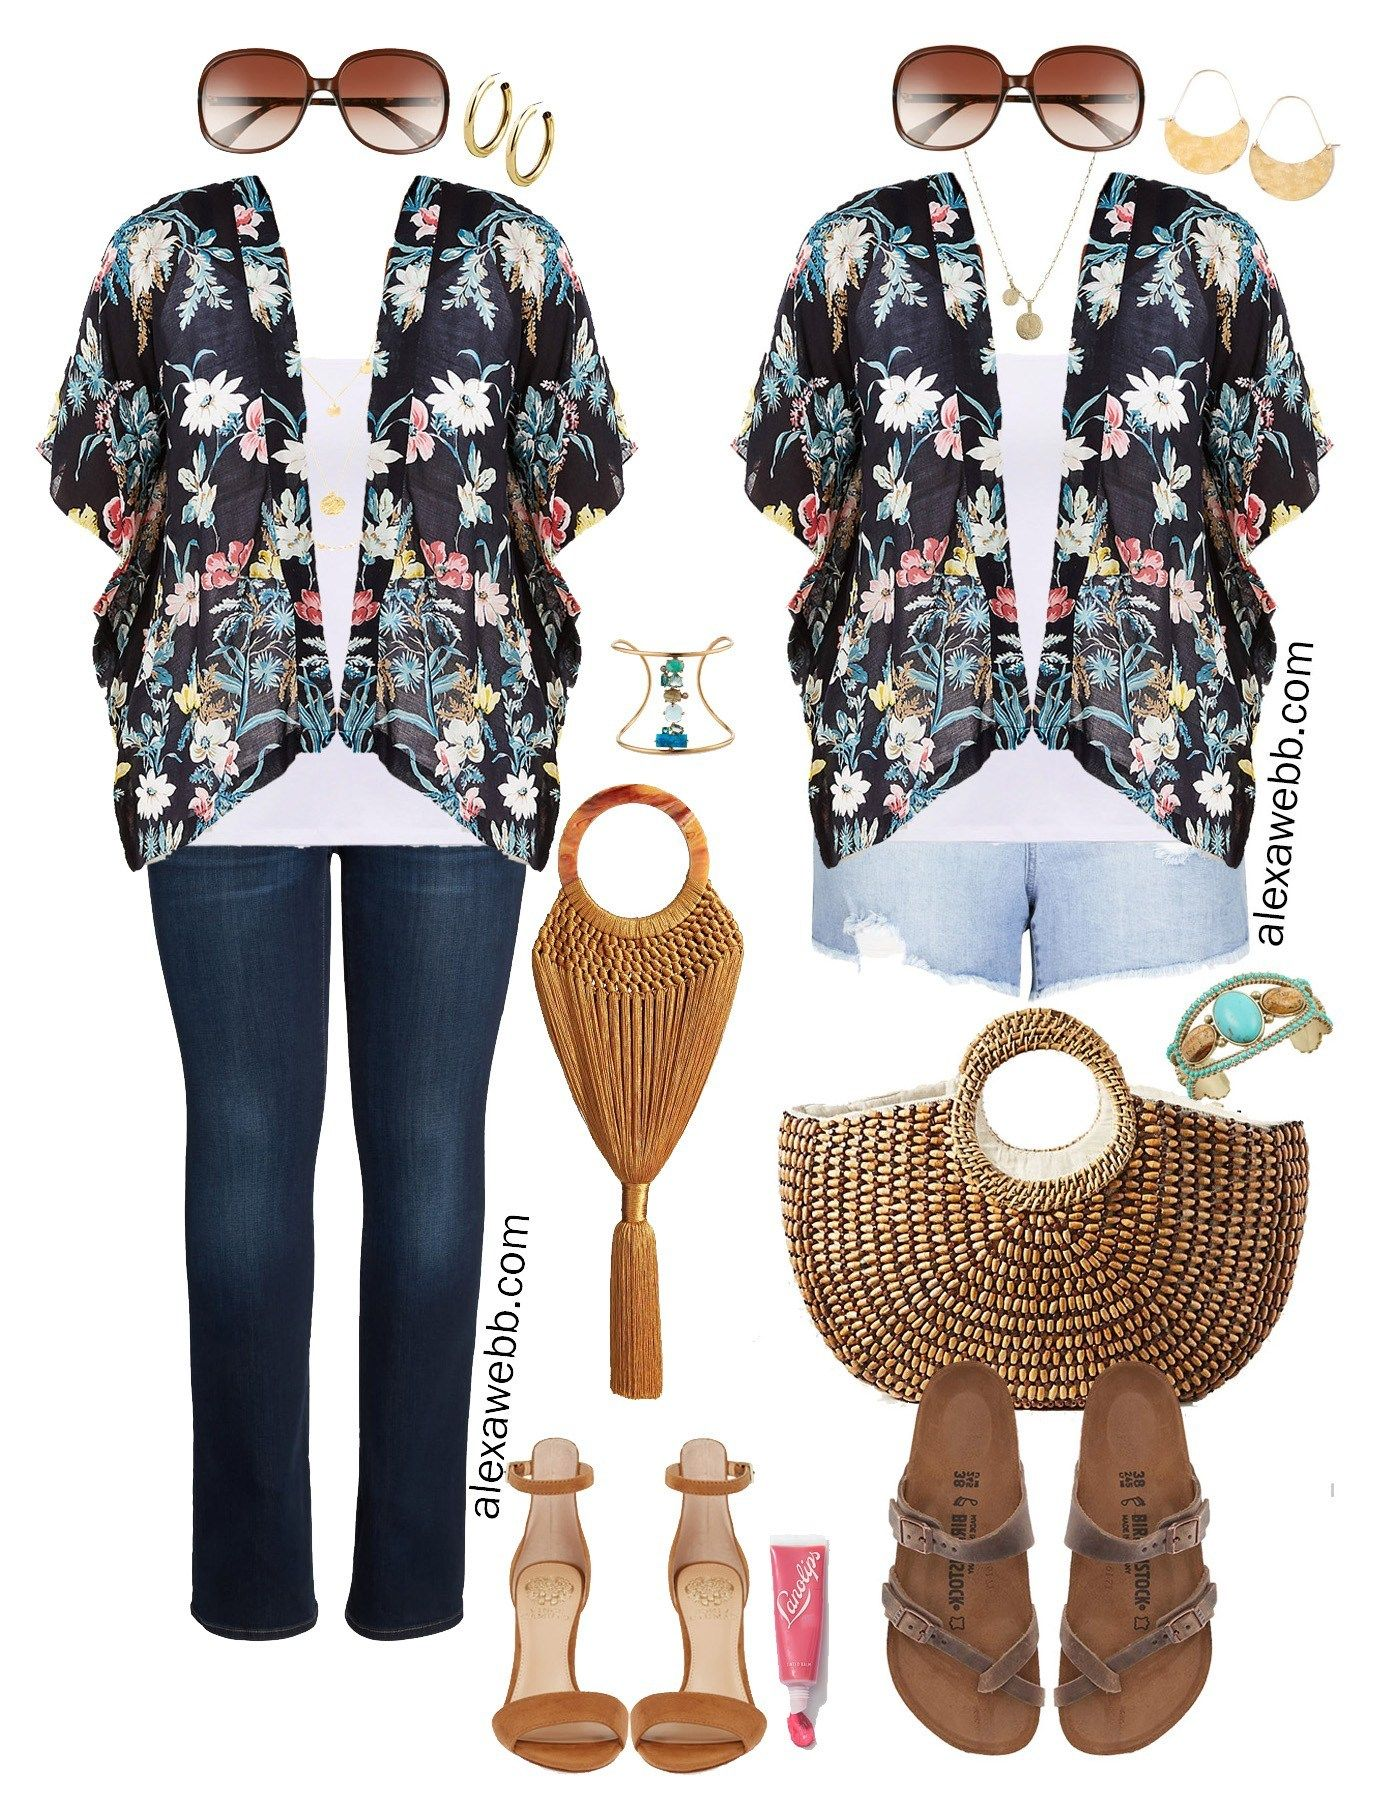 465d1123cd Plus Size Kimono Outfit Ideas - Summer Jeans and Denim Shorts, Sandals,  Kimono -